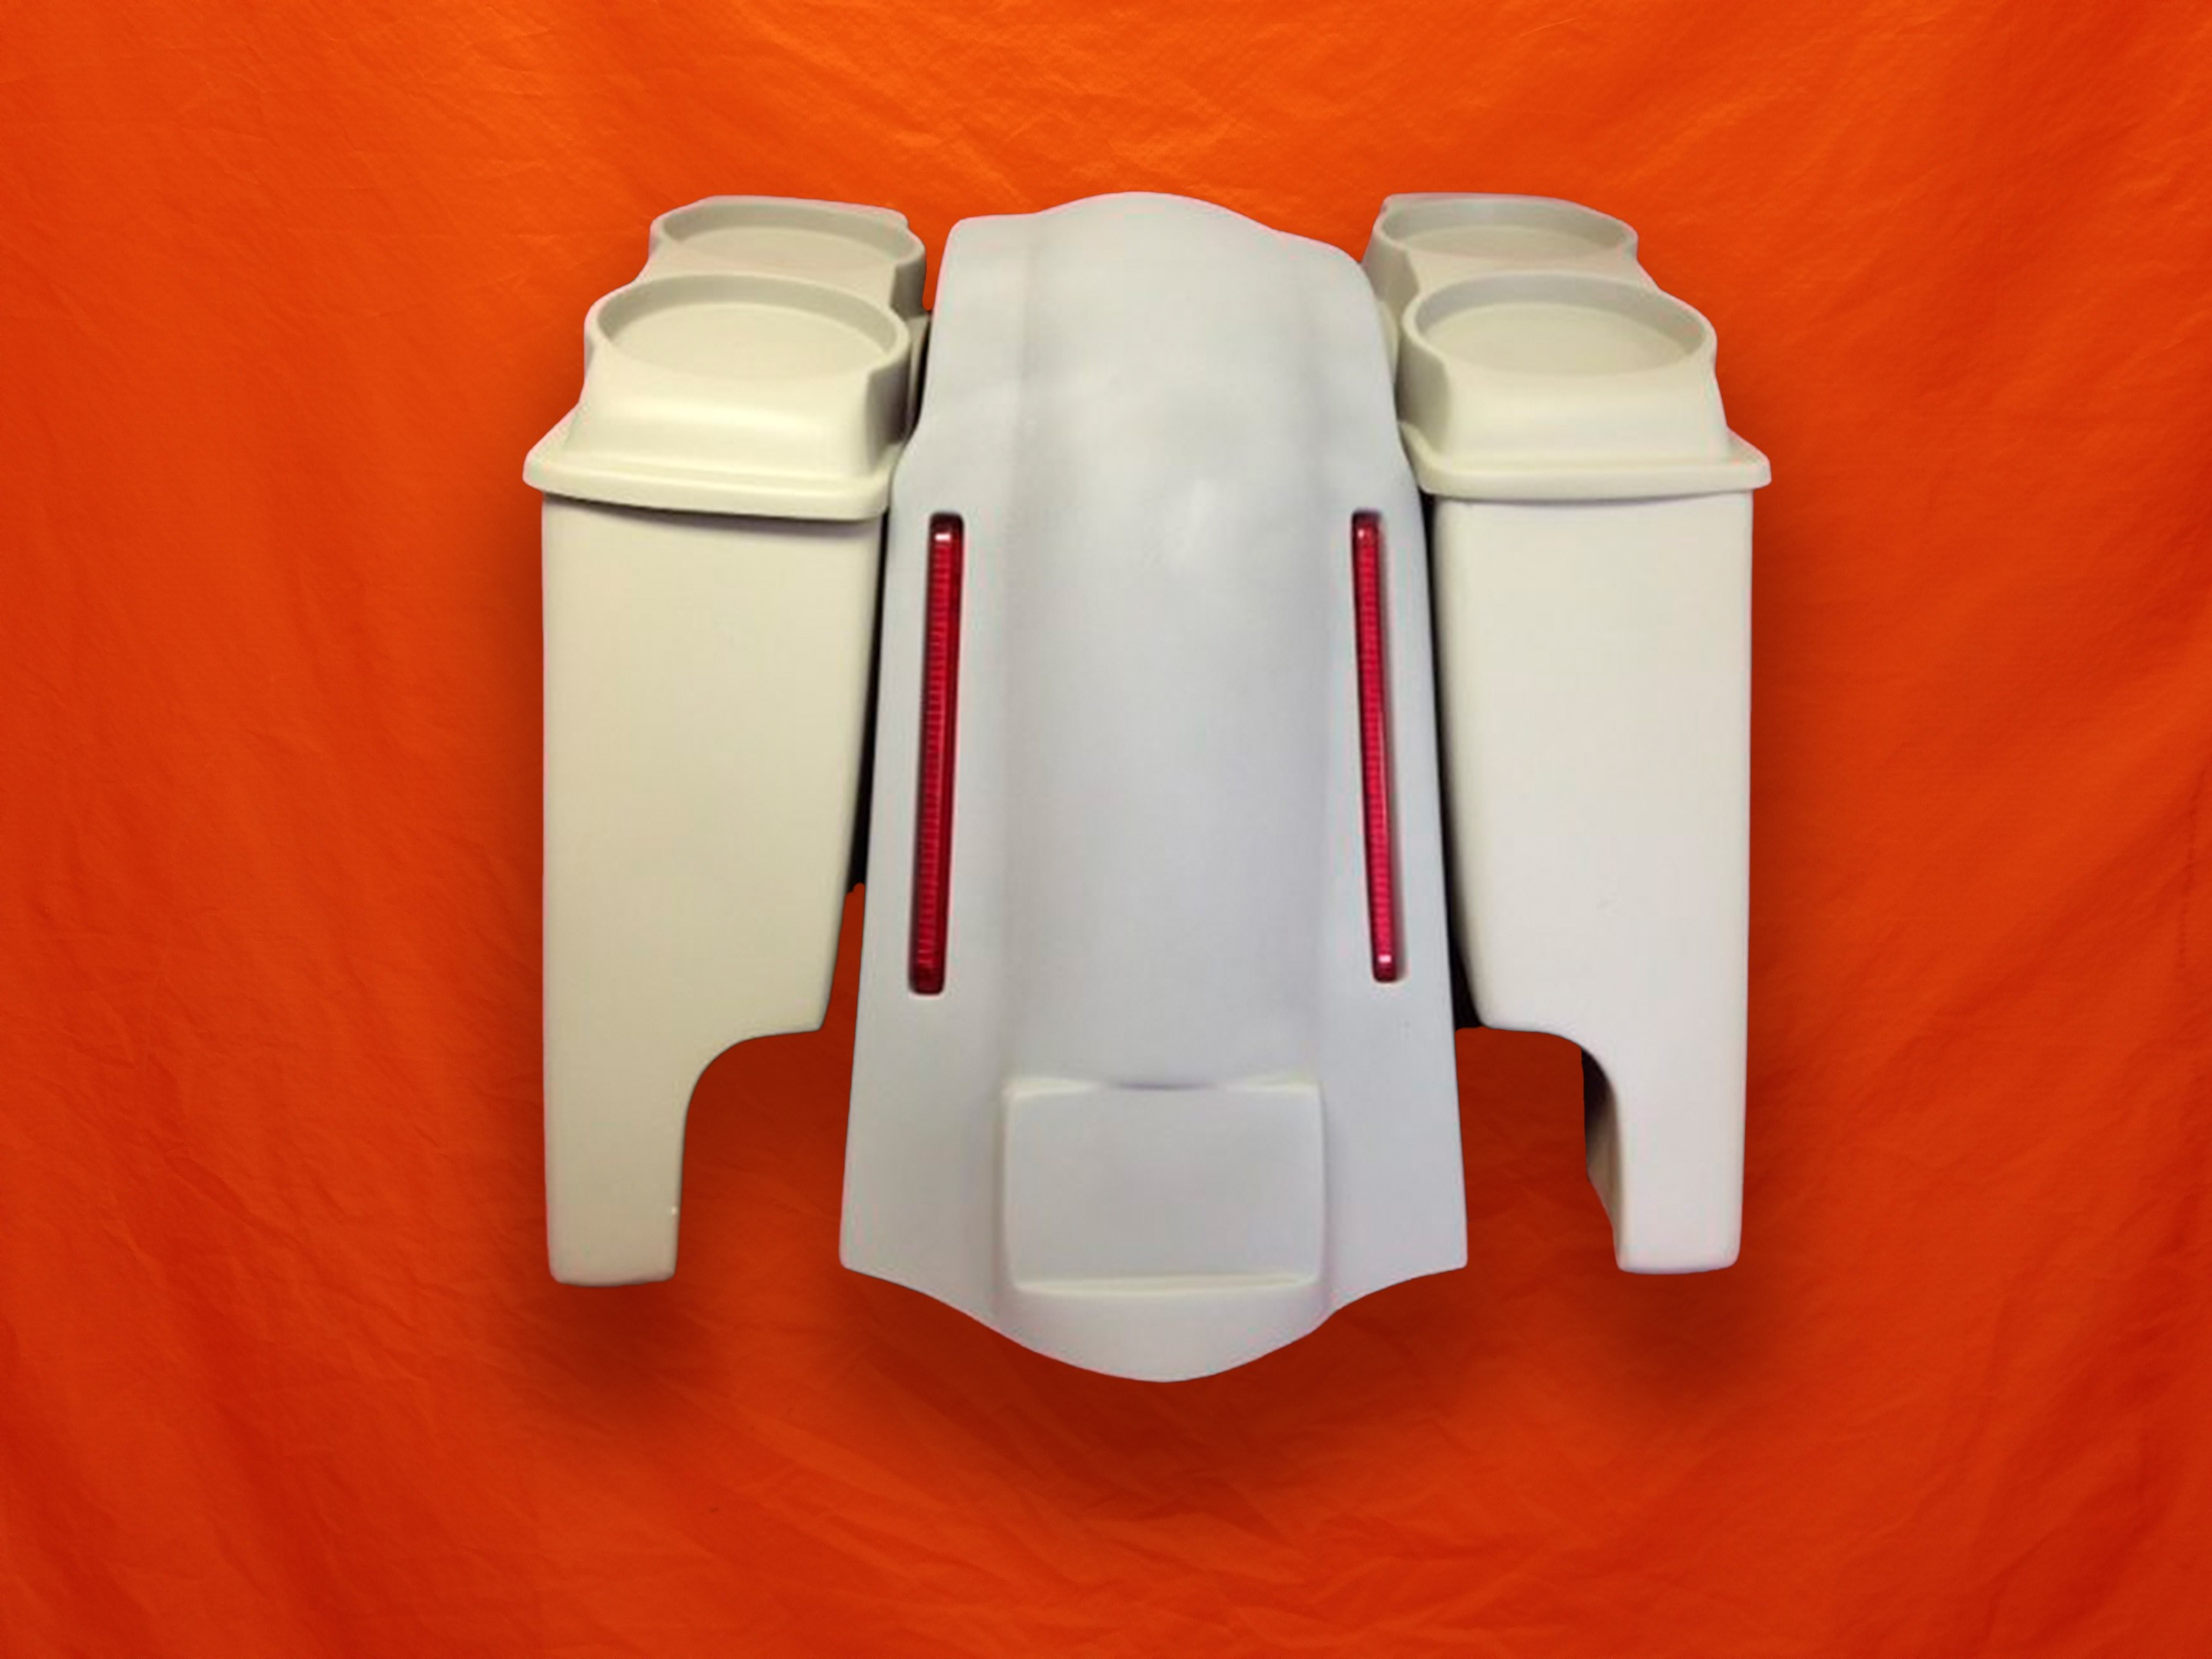 Harley-Davidson-Stretched-Bags-with-Dual-6x9-Speaker-Lids-and-LED-Lights-Fender